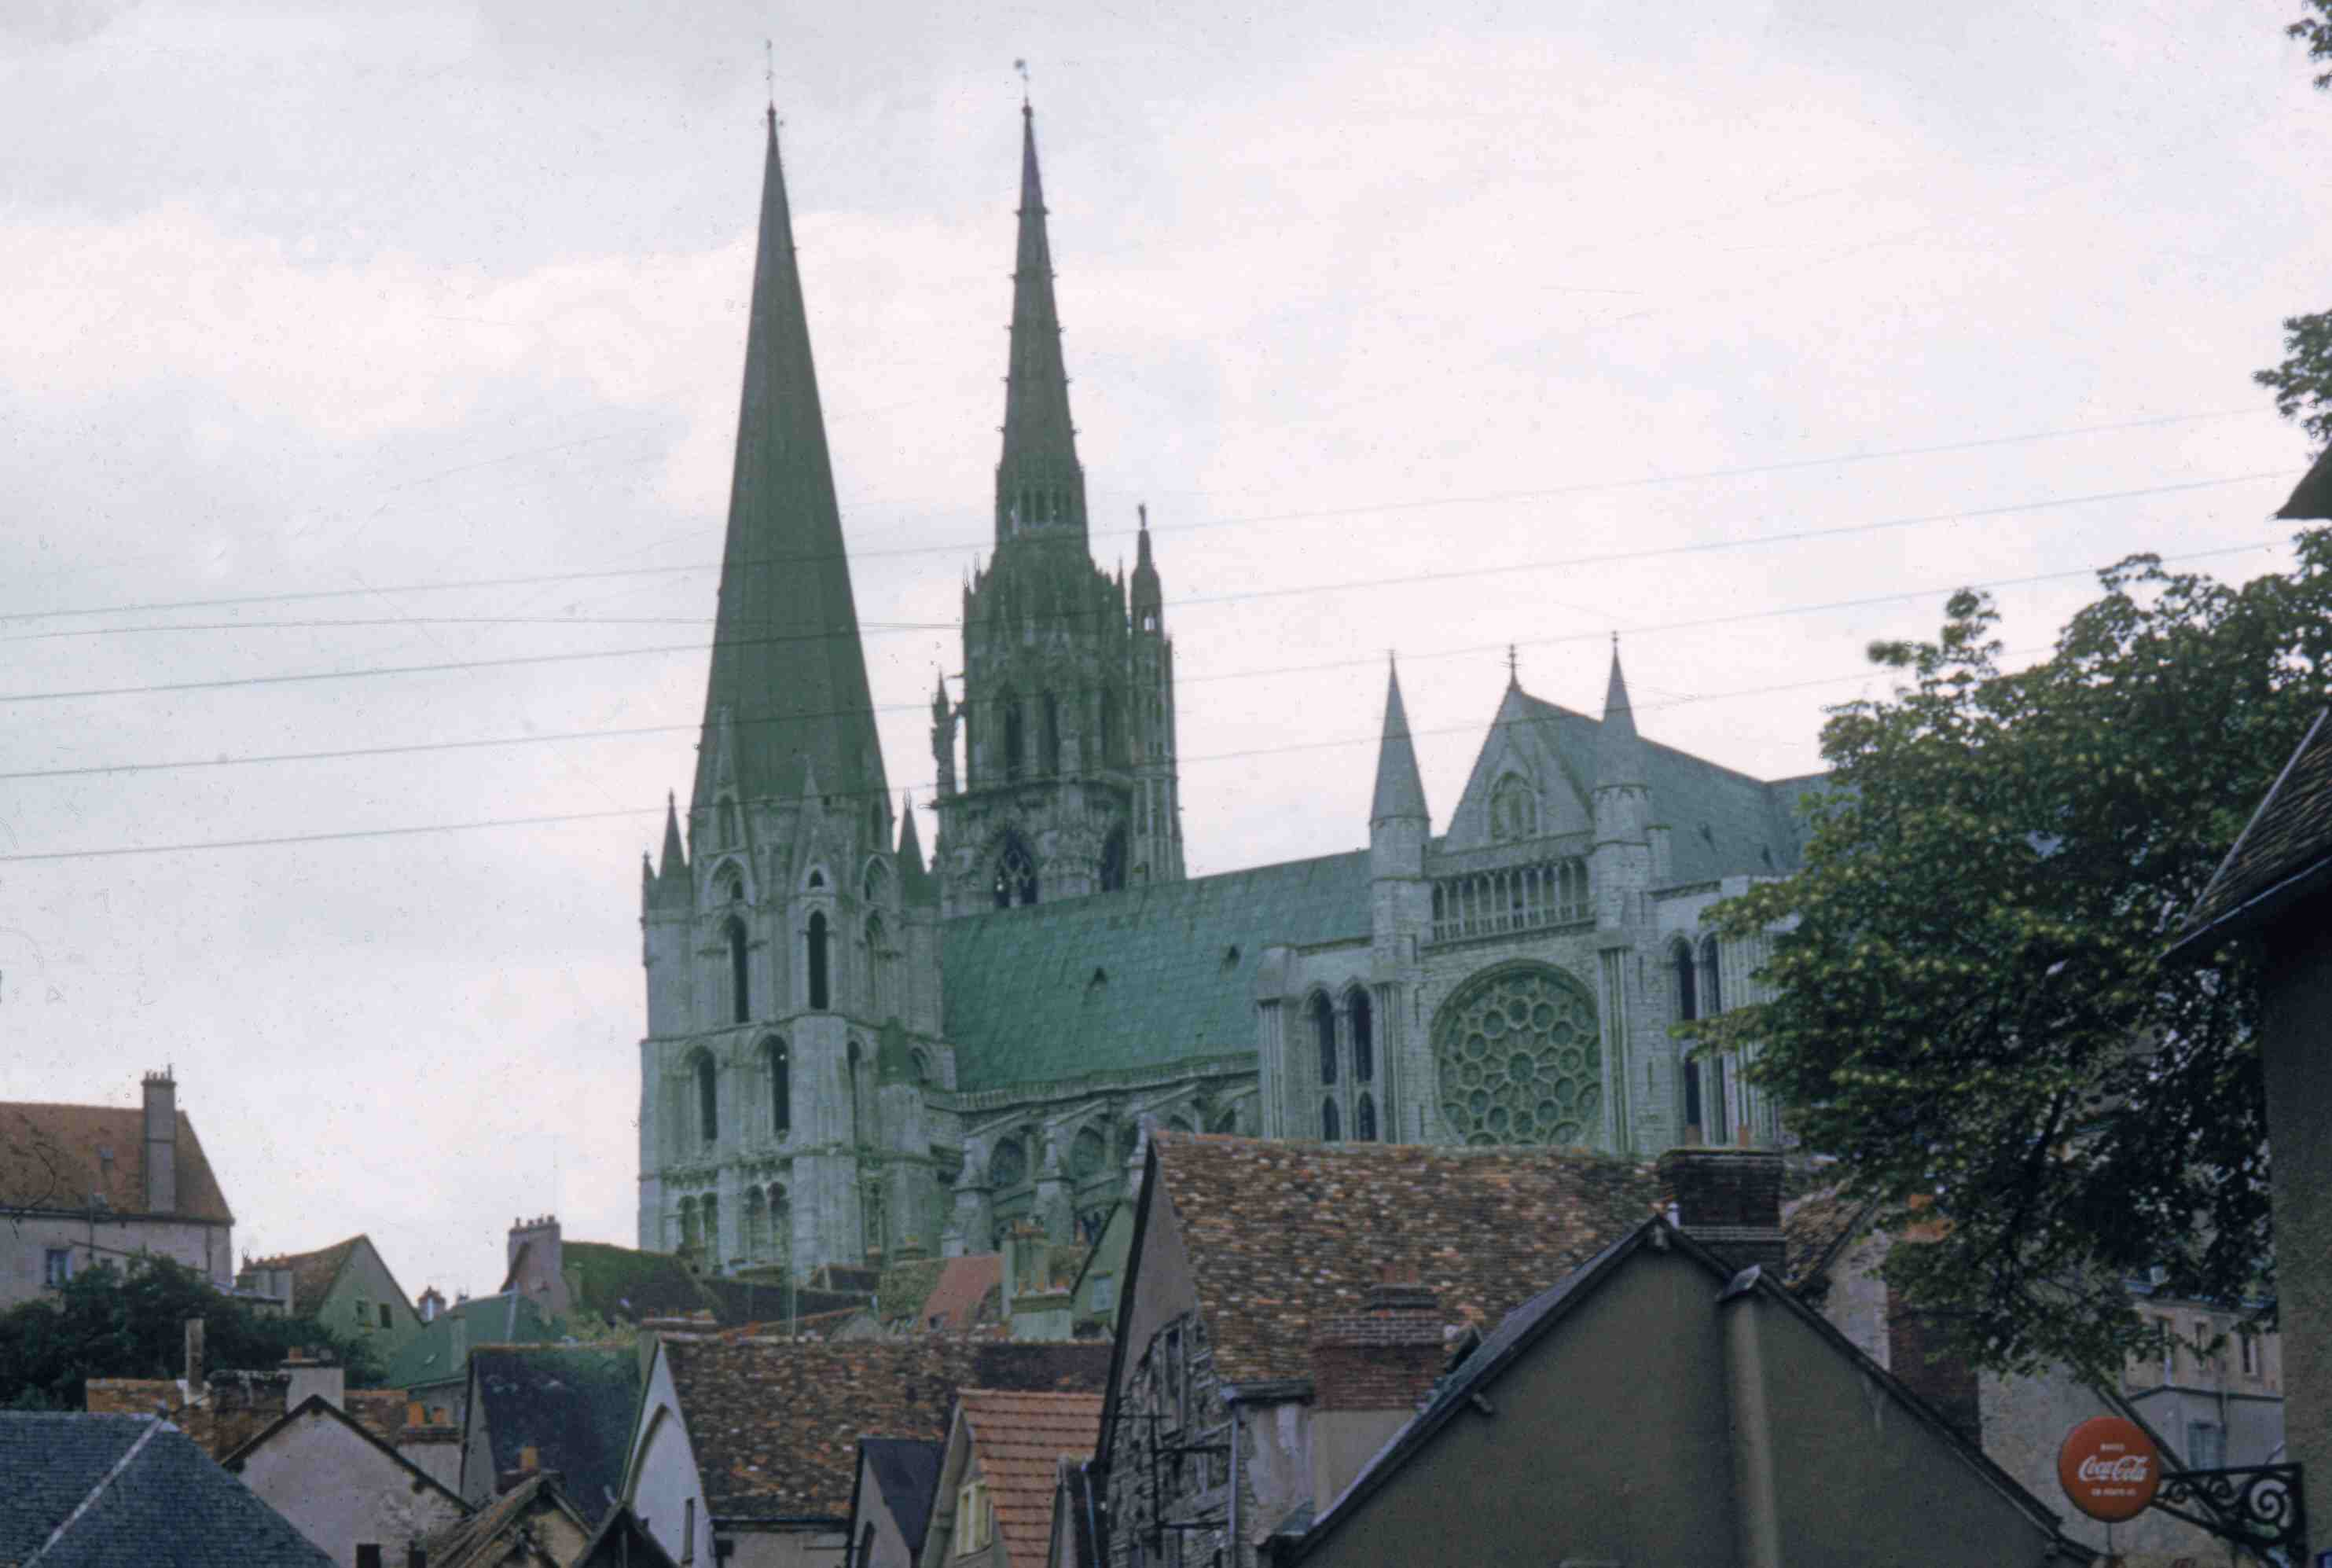 Looking at the gothic spires of the Cathedrale Notre-Dame de Chartres from the streets of Chartres, France